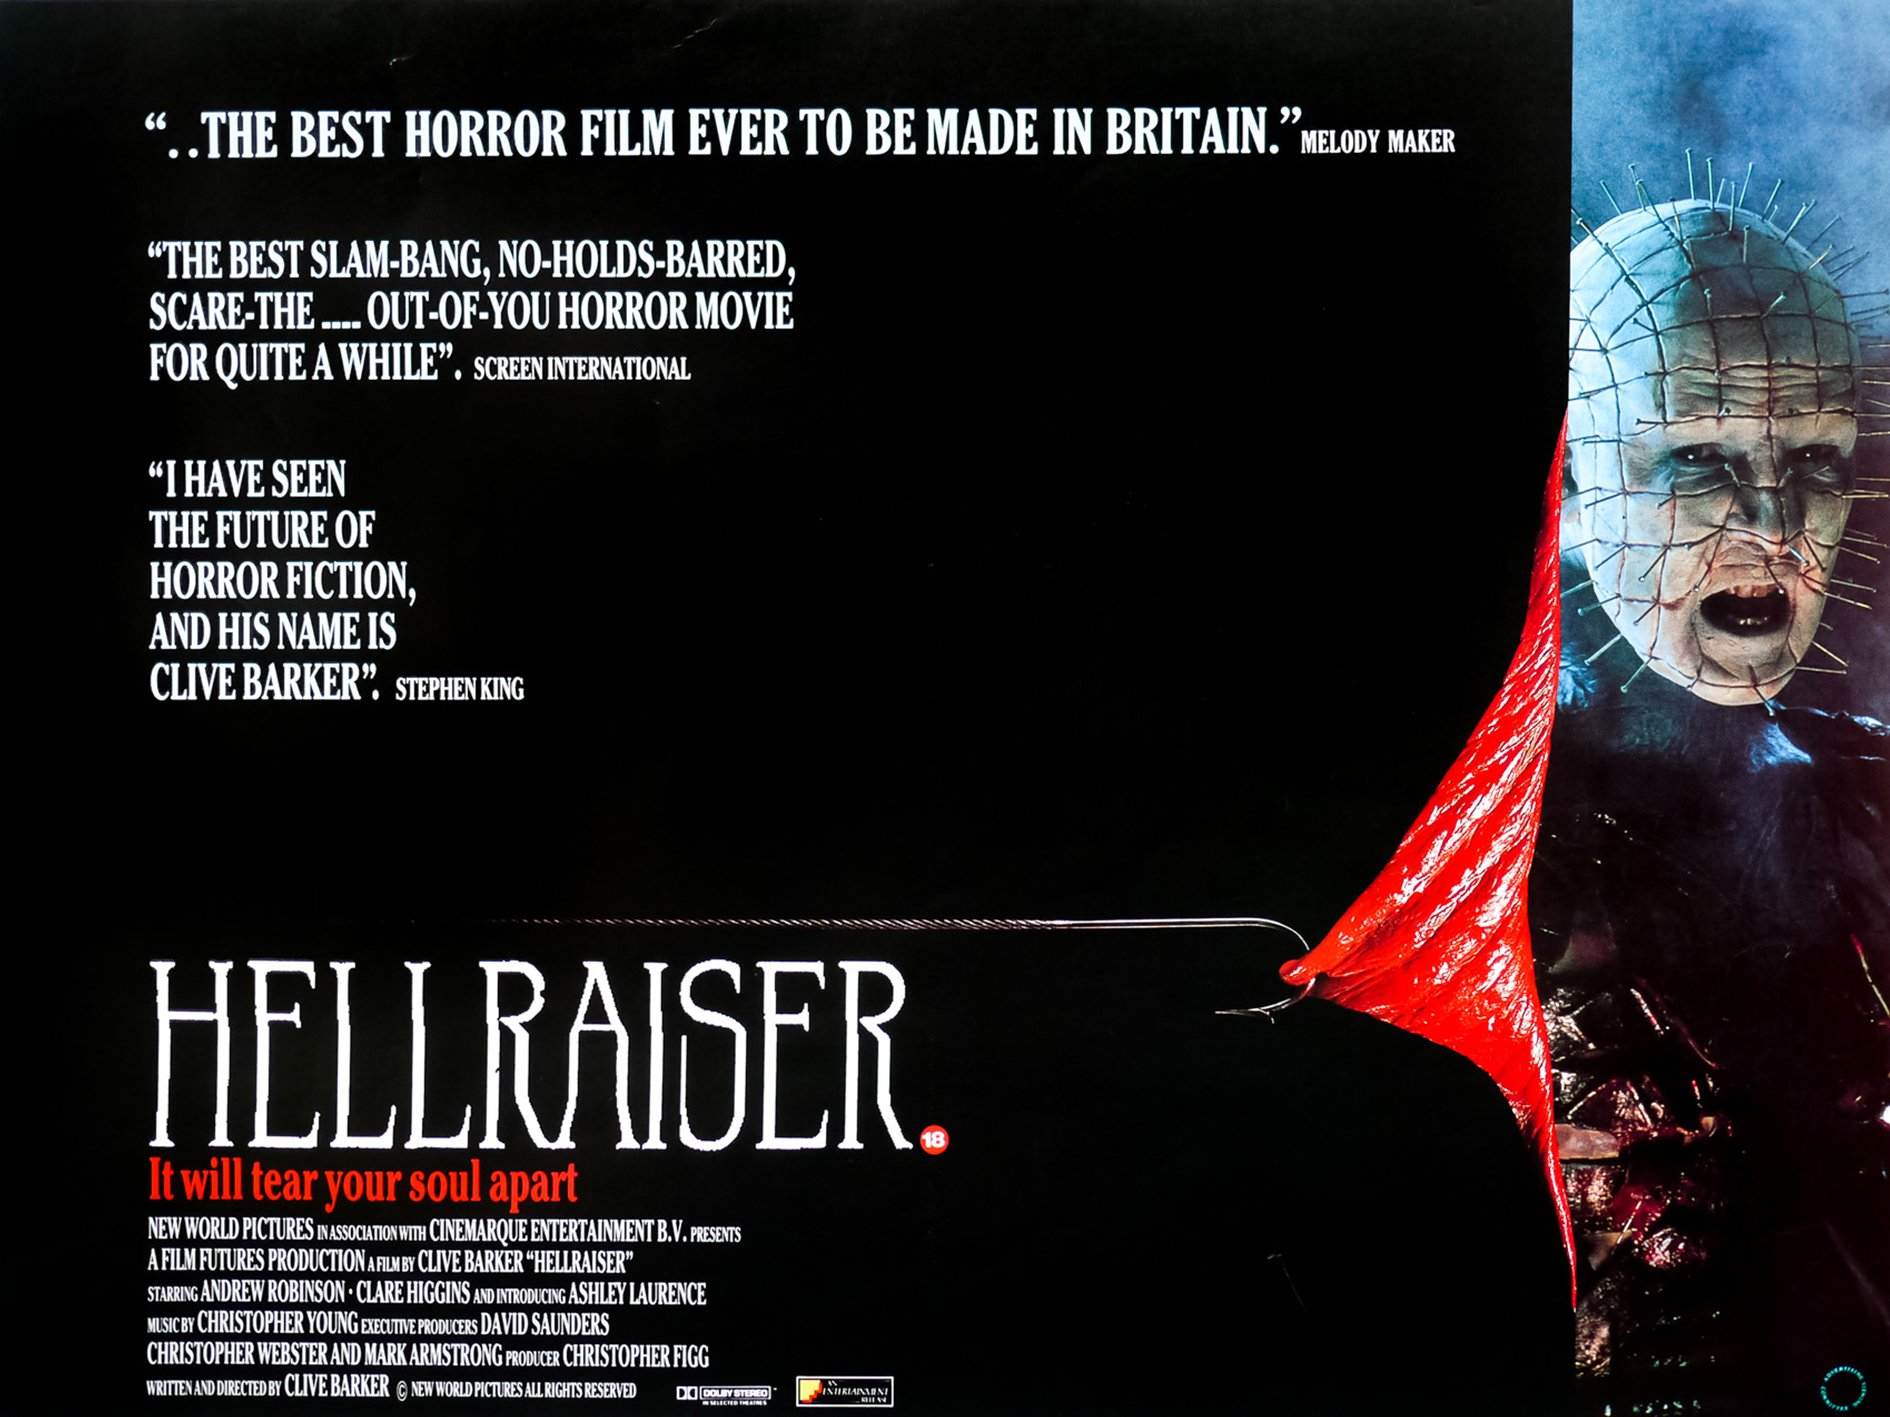 Hellraiser 2 These 10 Frightening Facts About Hellraiser Will Tear Your Soul Apart